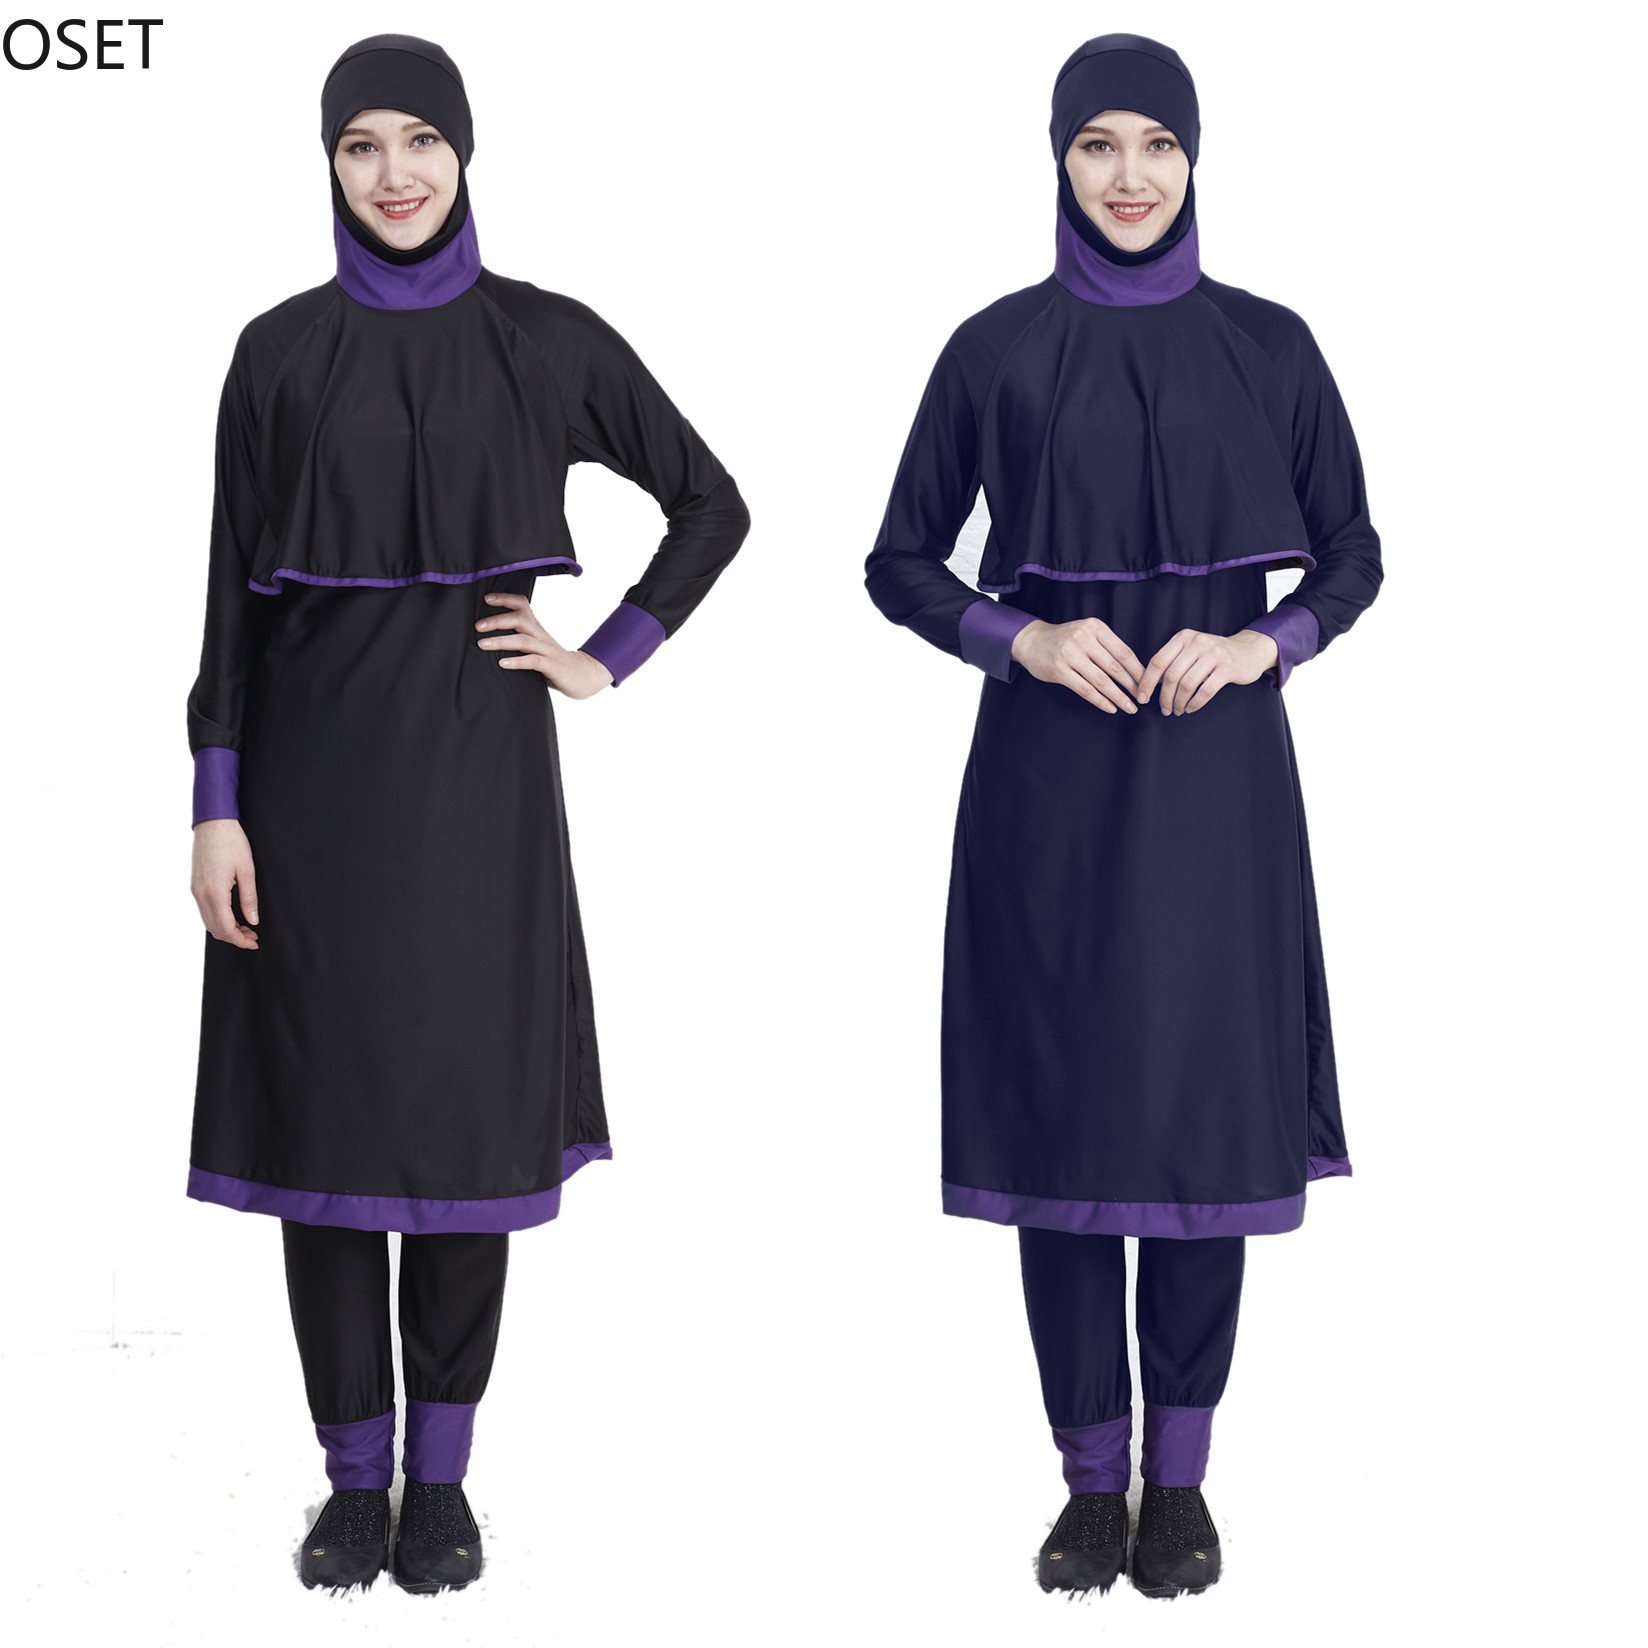 Hijab Women's Swimming Suit Long Full Cover Burkini Muslim Swimwear Ladies Hides Swimsuit Woman Islamic Swim Wear Modest Bathing